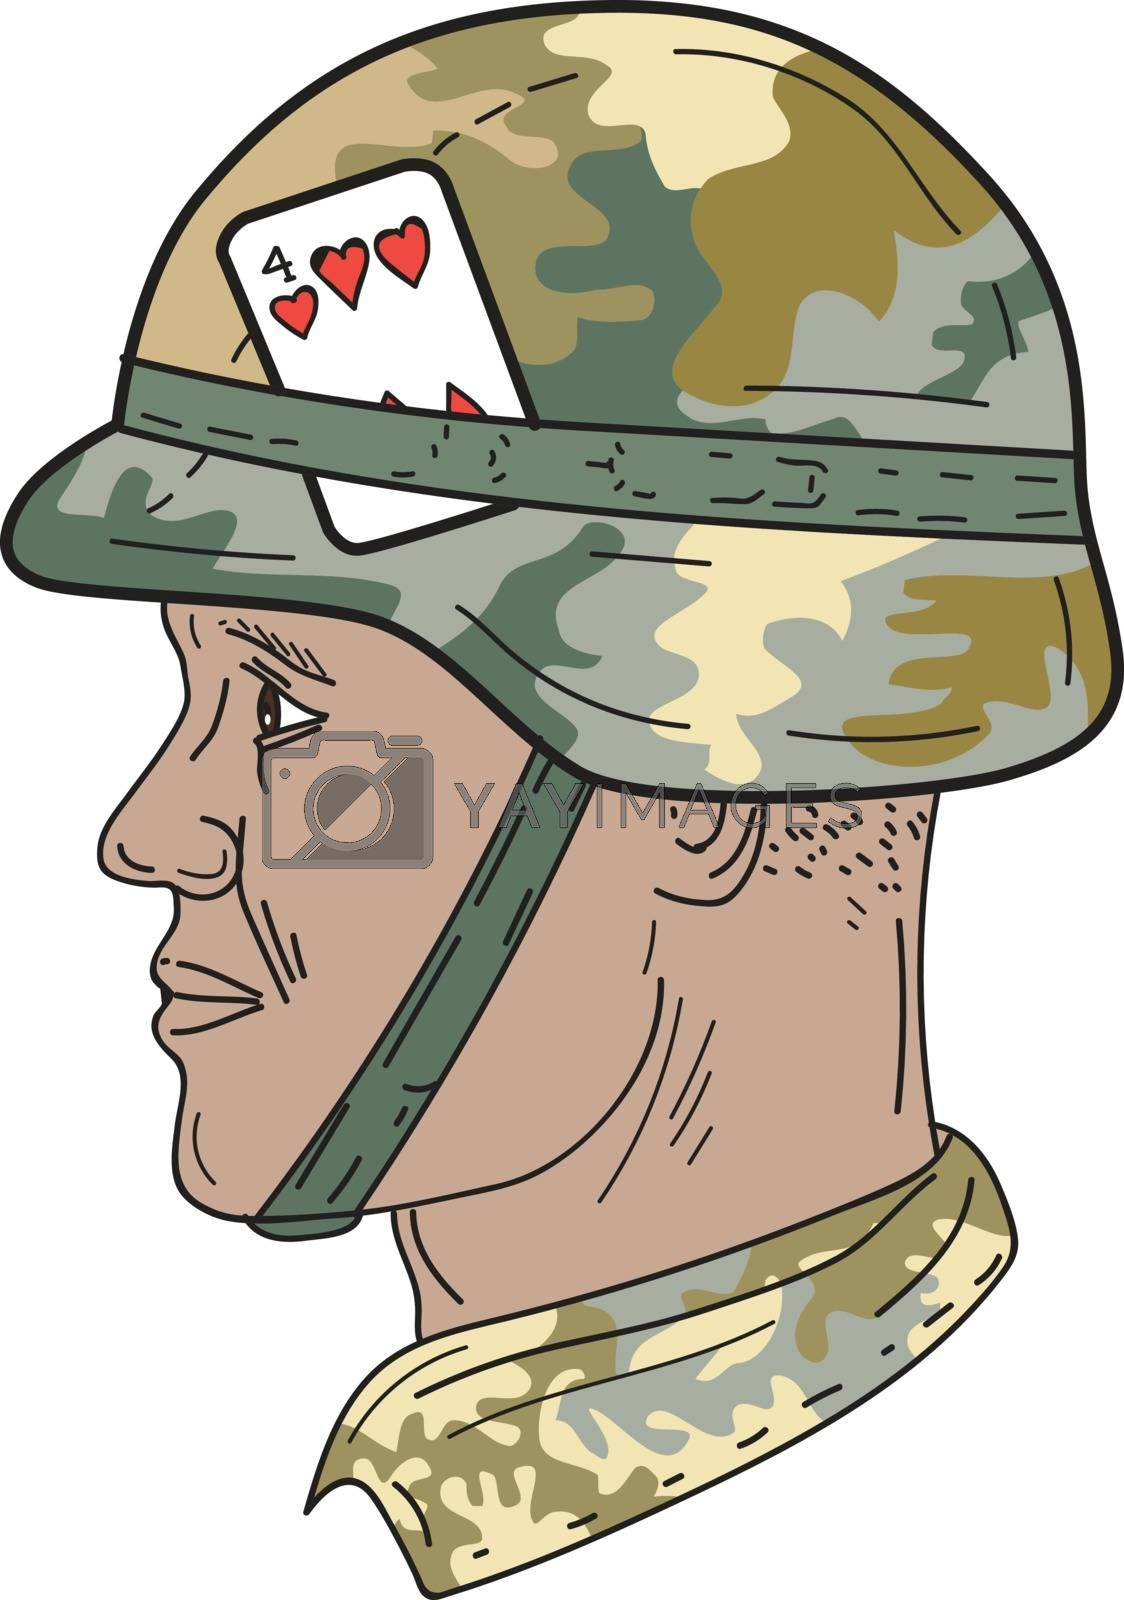 Drawing sketch style illustration of an African American soldier wearing Us Army Kevlar combat helmet with camouflage cloth cover and four of hearts playing card attached to side viewed from the side set on isolated white background.